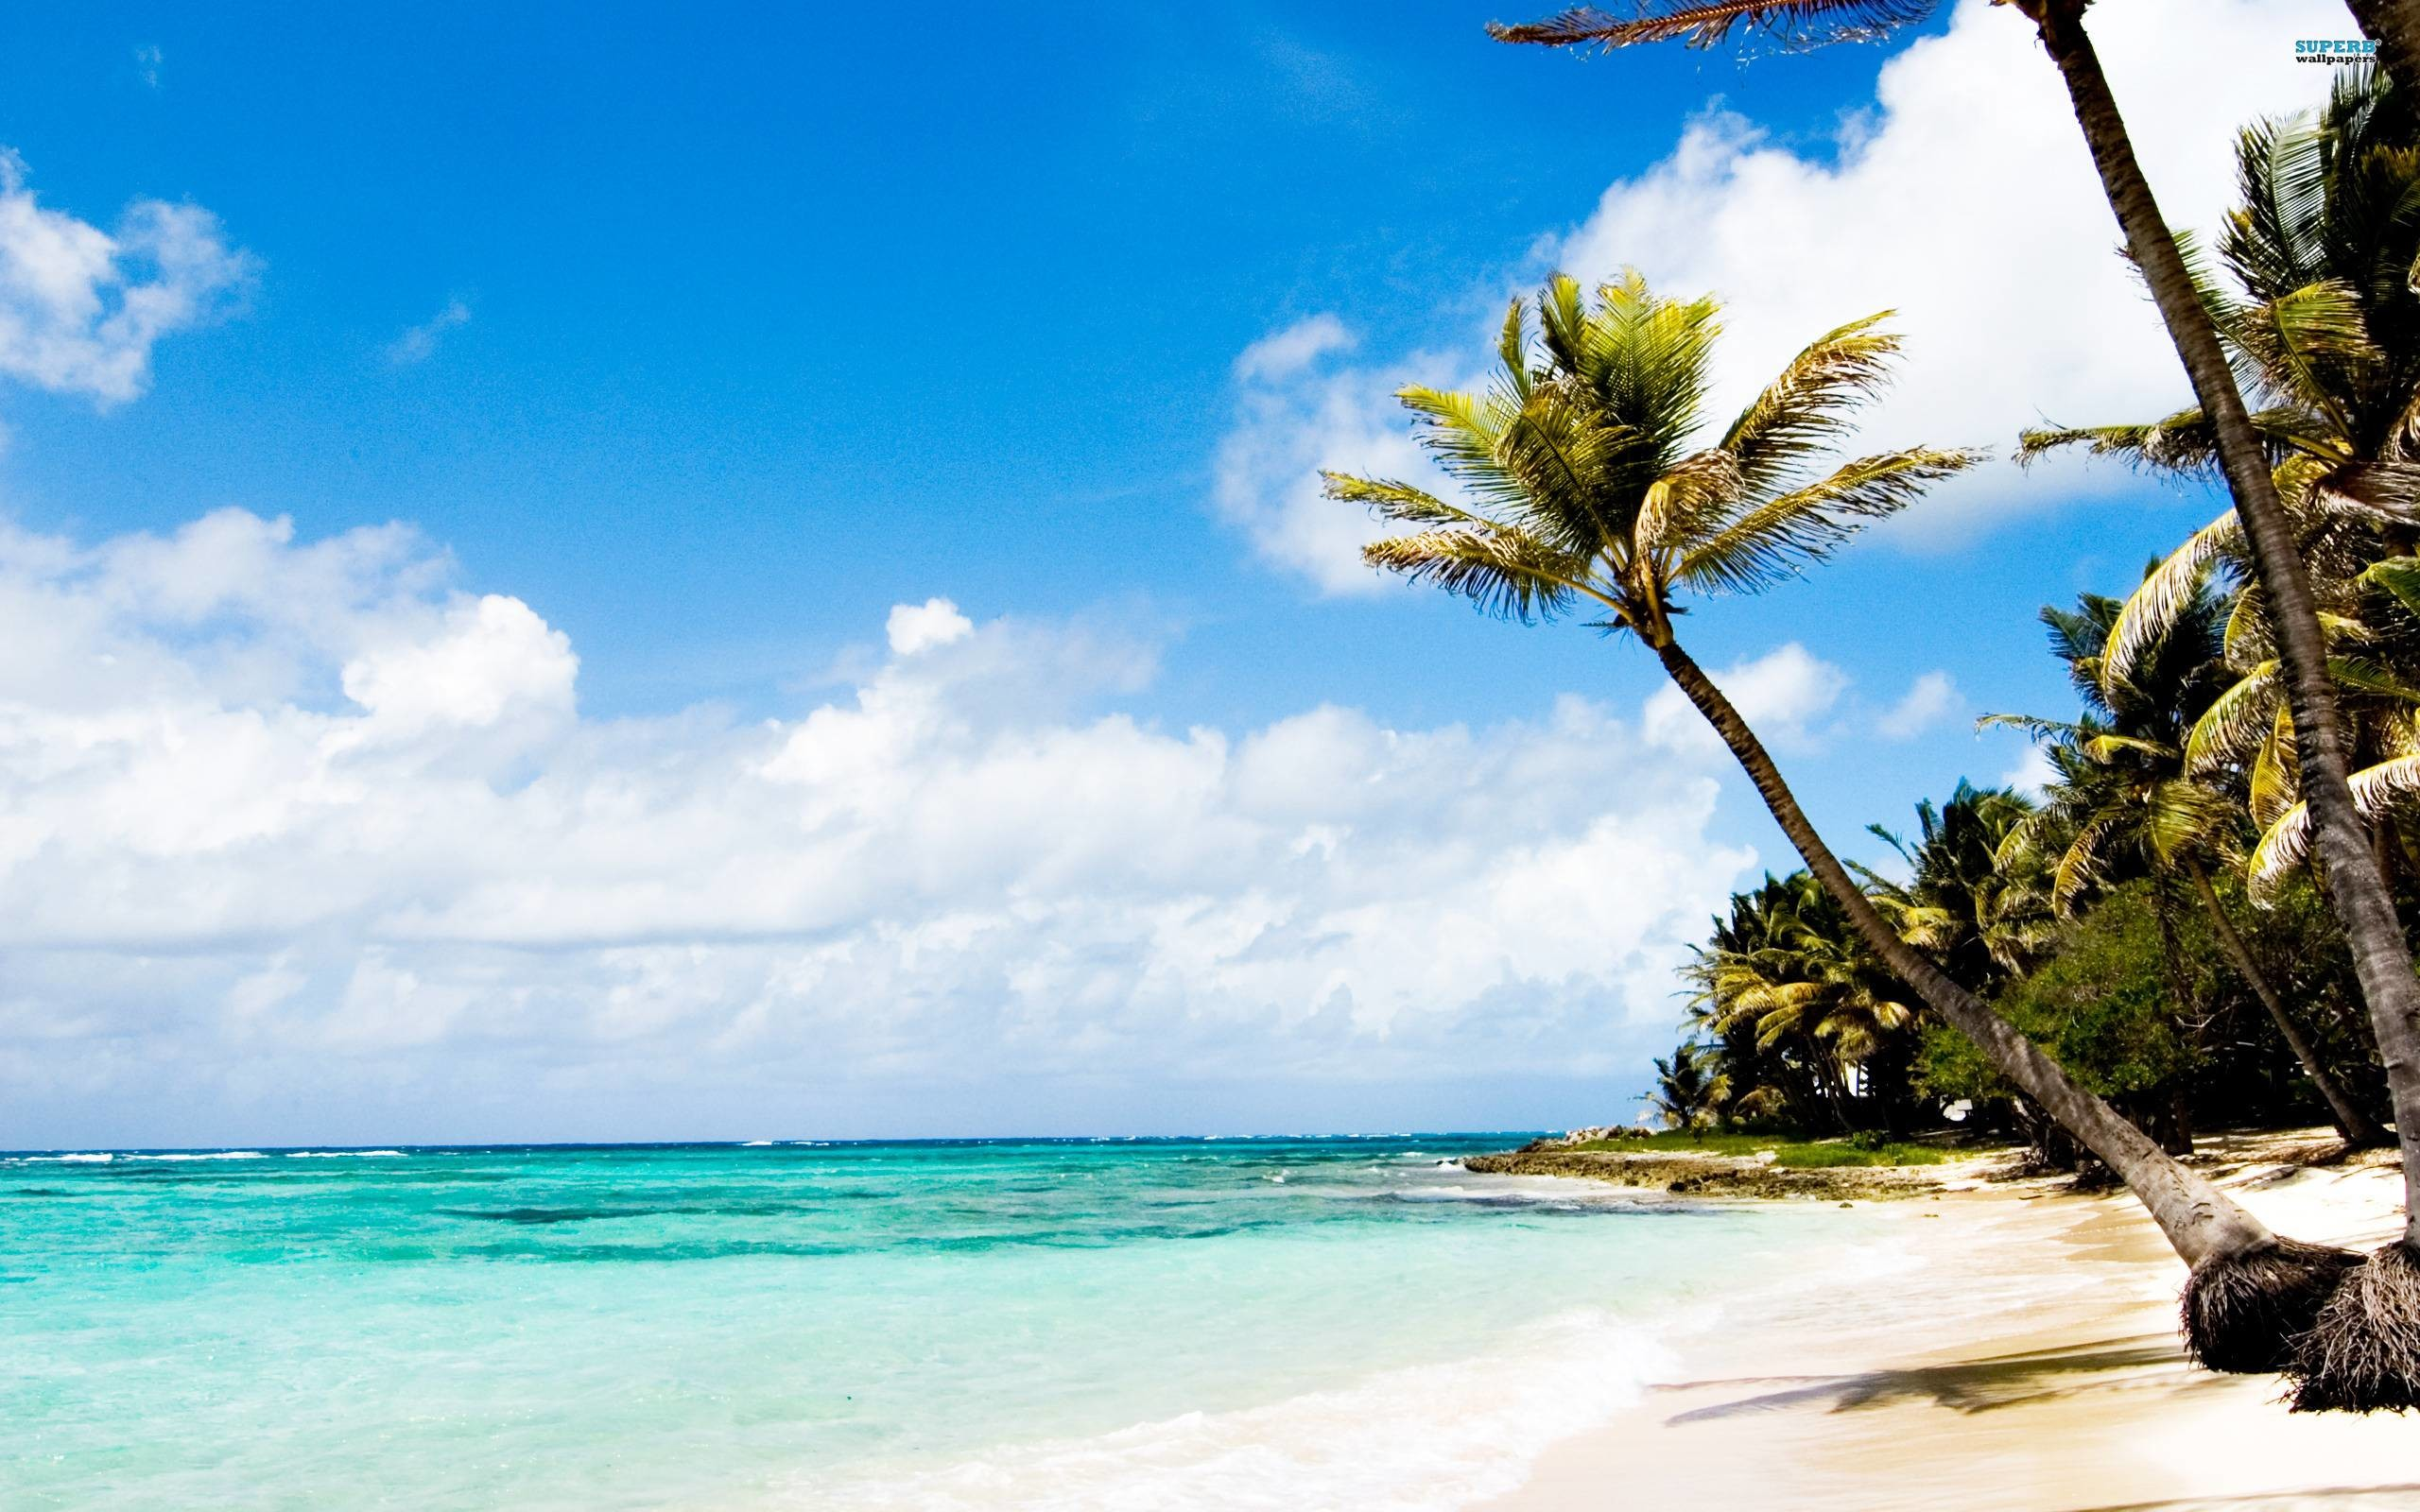 2560x1600 wallpaper beaches caribbean